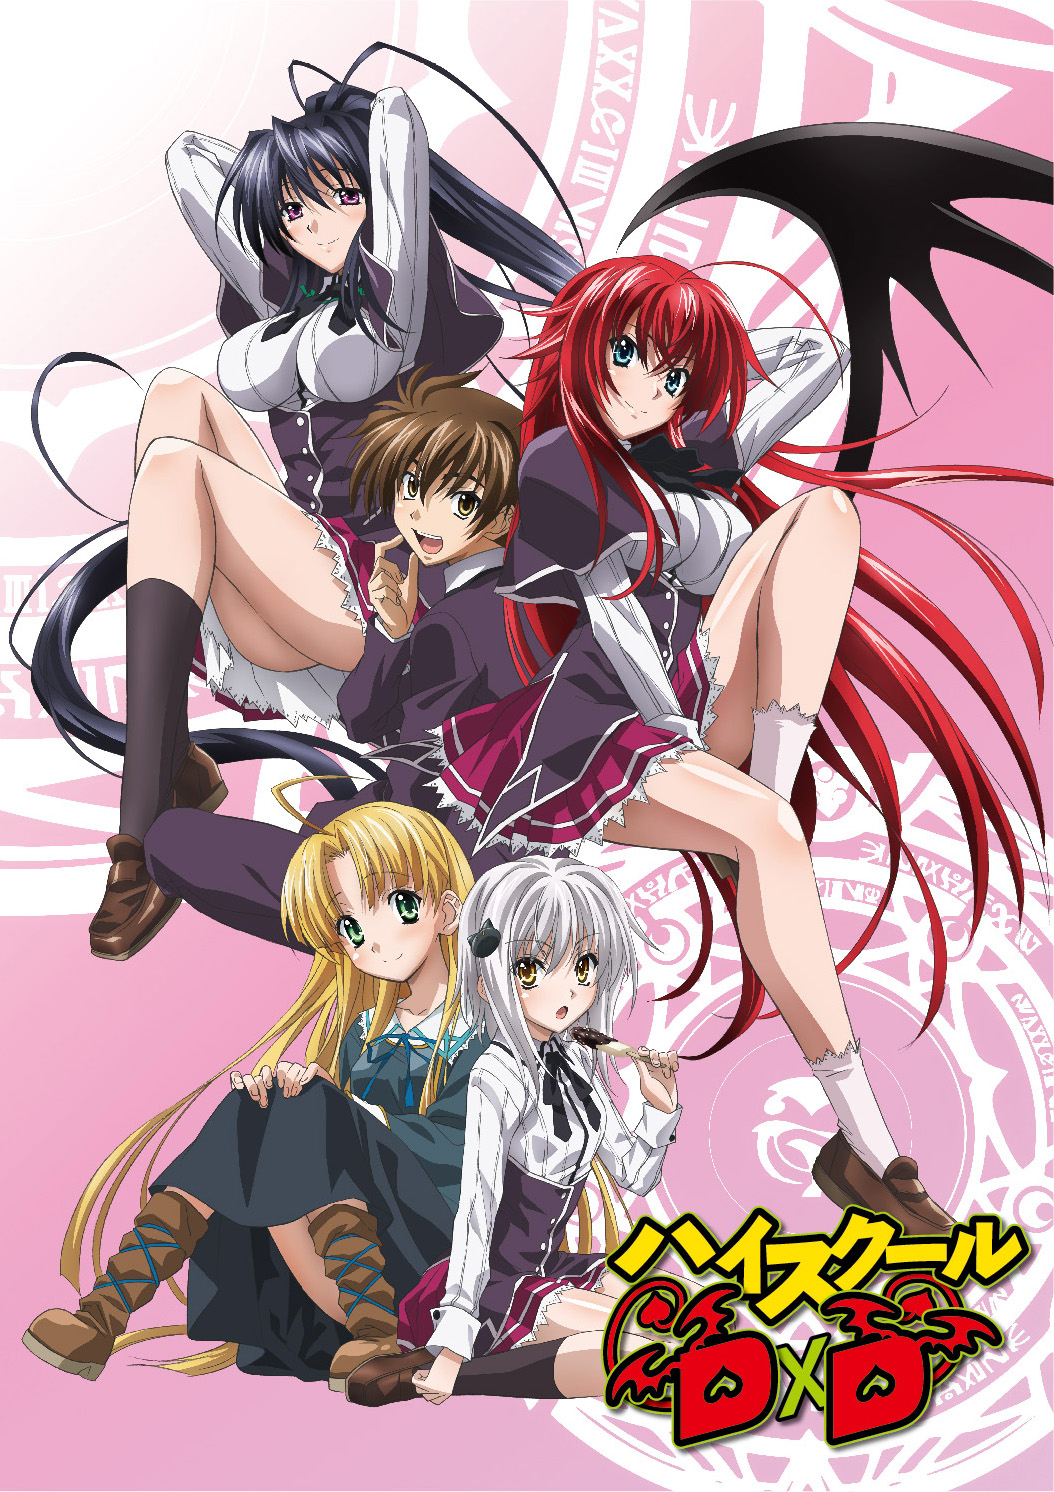 HentaiStream.com High School DxD Episode 4